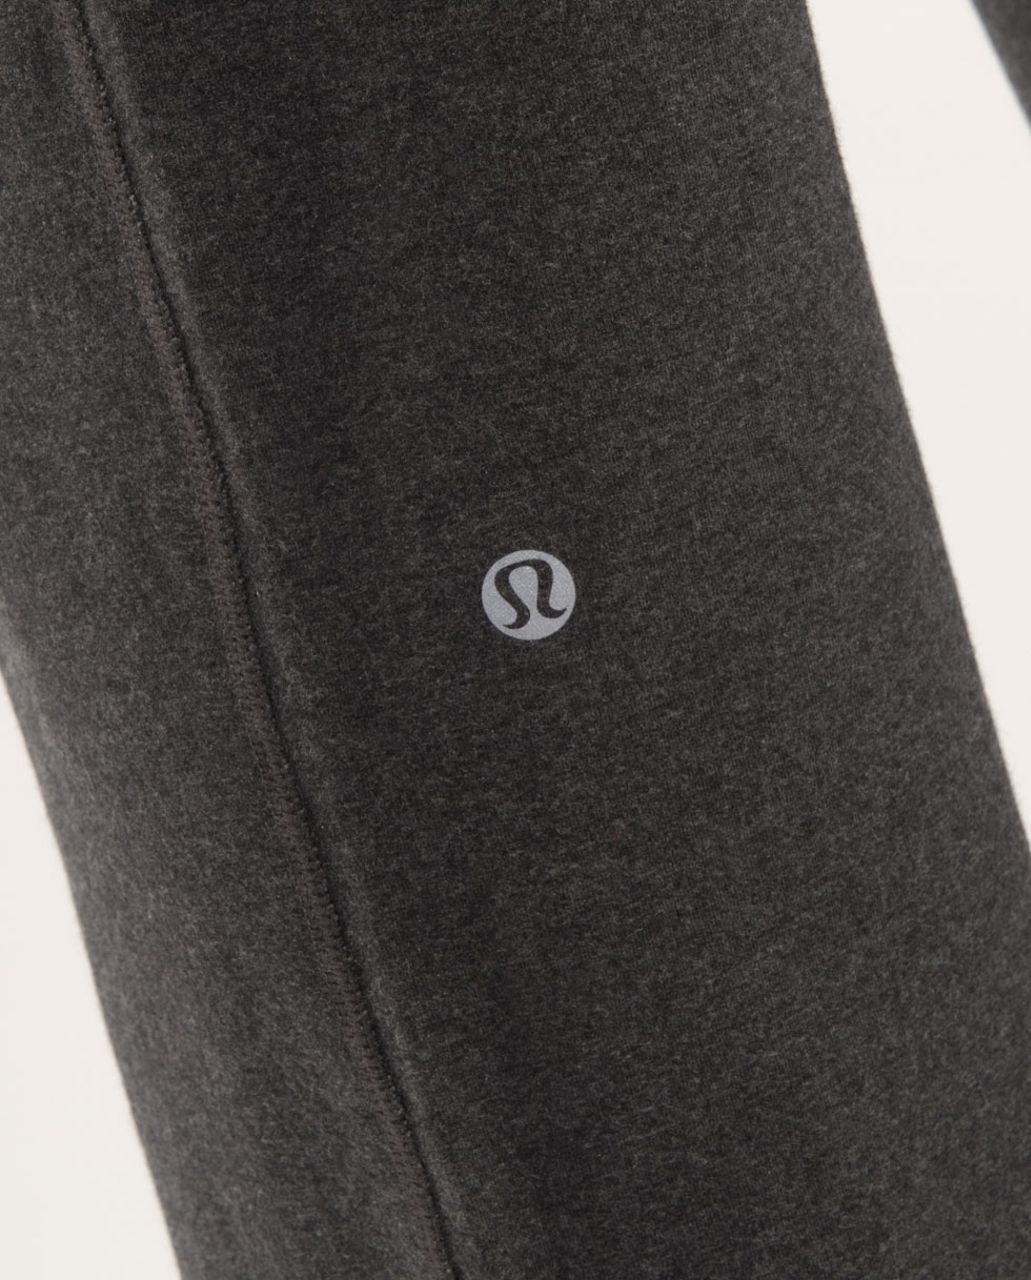 Lululemon Relaxed Fit Pant *Modal - Heathered Black